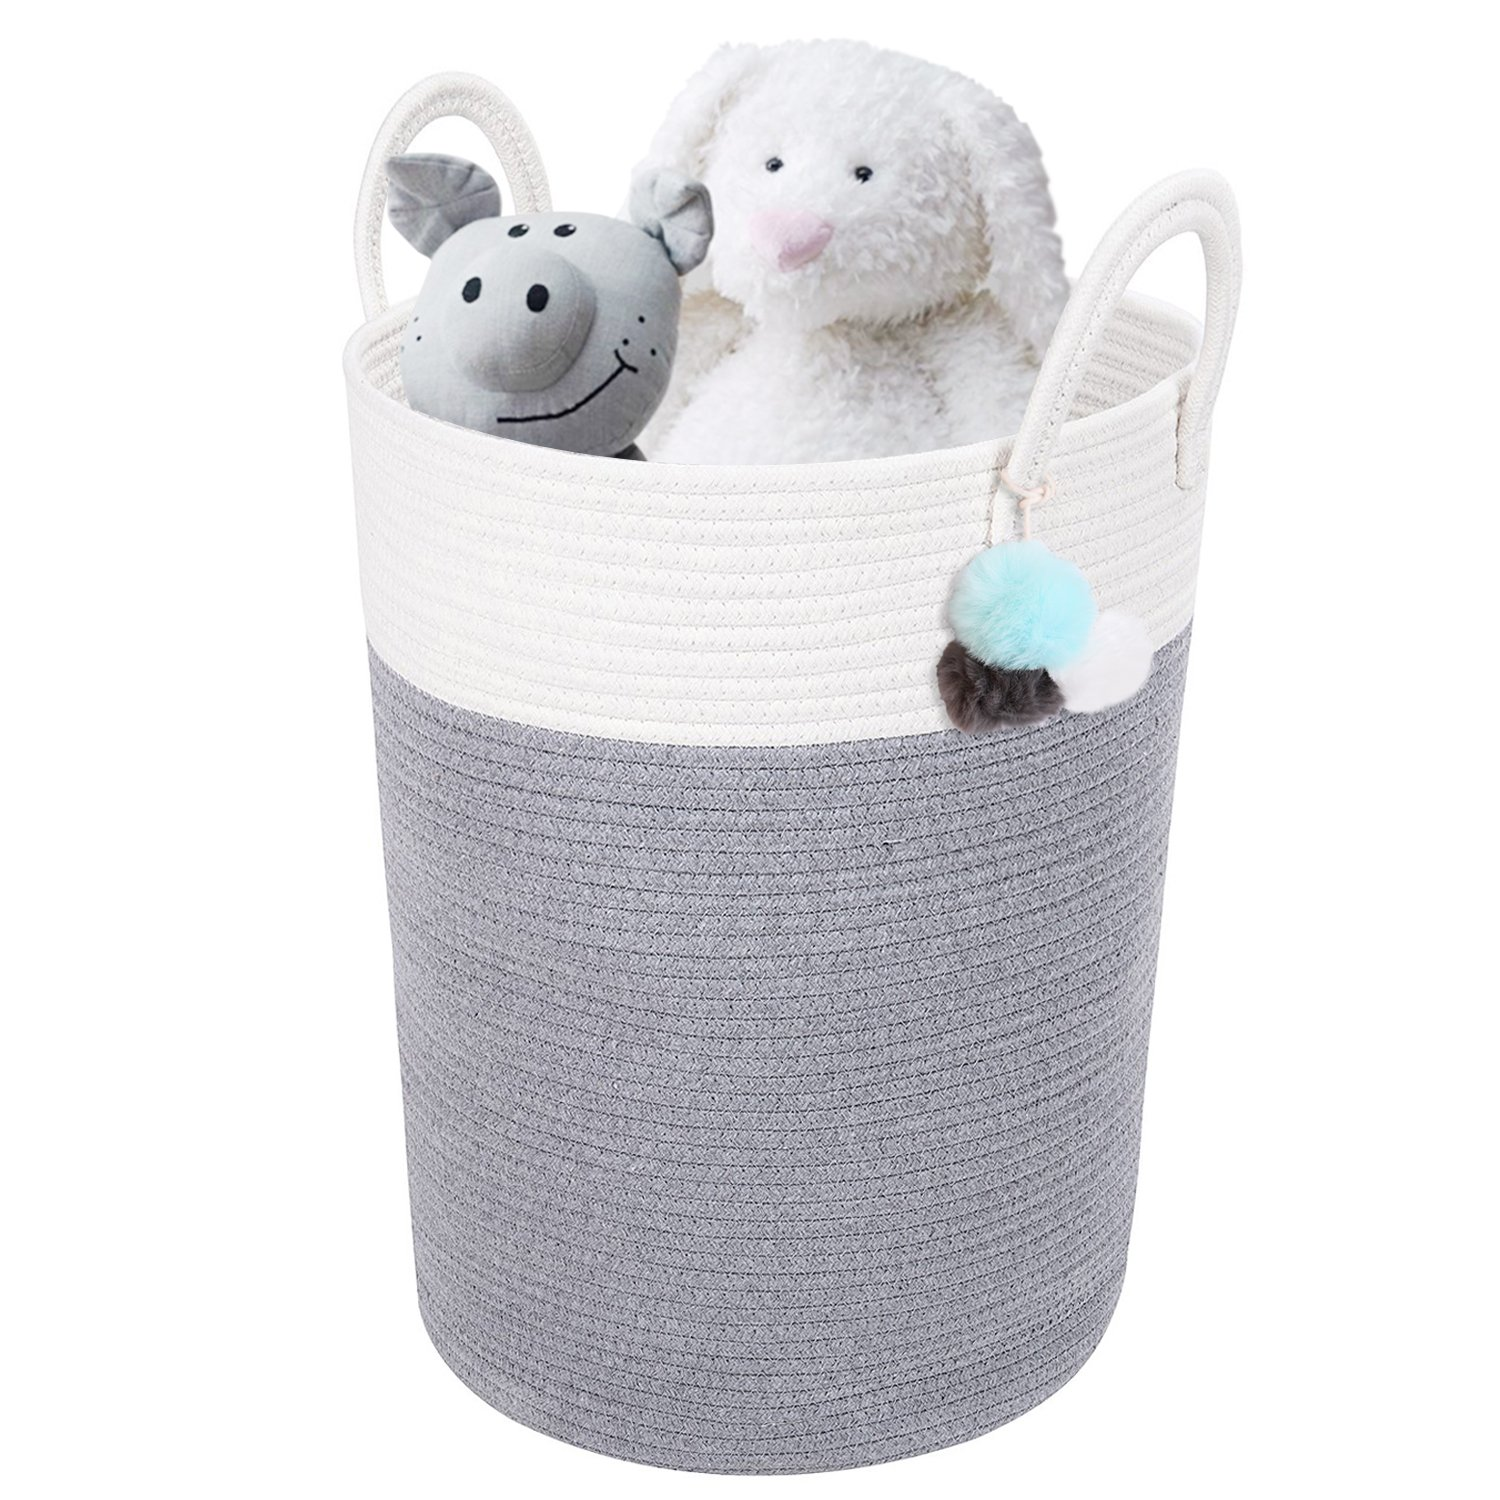 DOKEHOM DKA0624WBL X-Large Storage Baskets - 17' x 14.6' - Cotton Rope Basket Woven Baby Laundry Basket with Handle for Diaper Toy Cute Neutral Home Decor (White, L) IMOTECH TECHNOLOGY